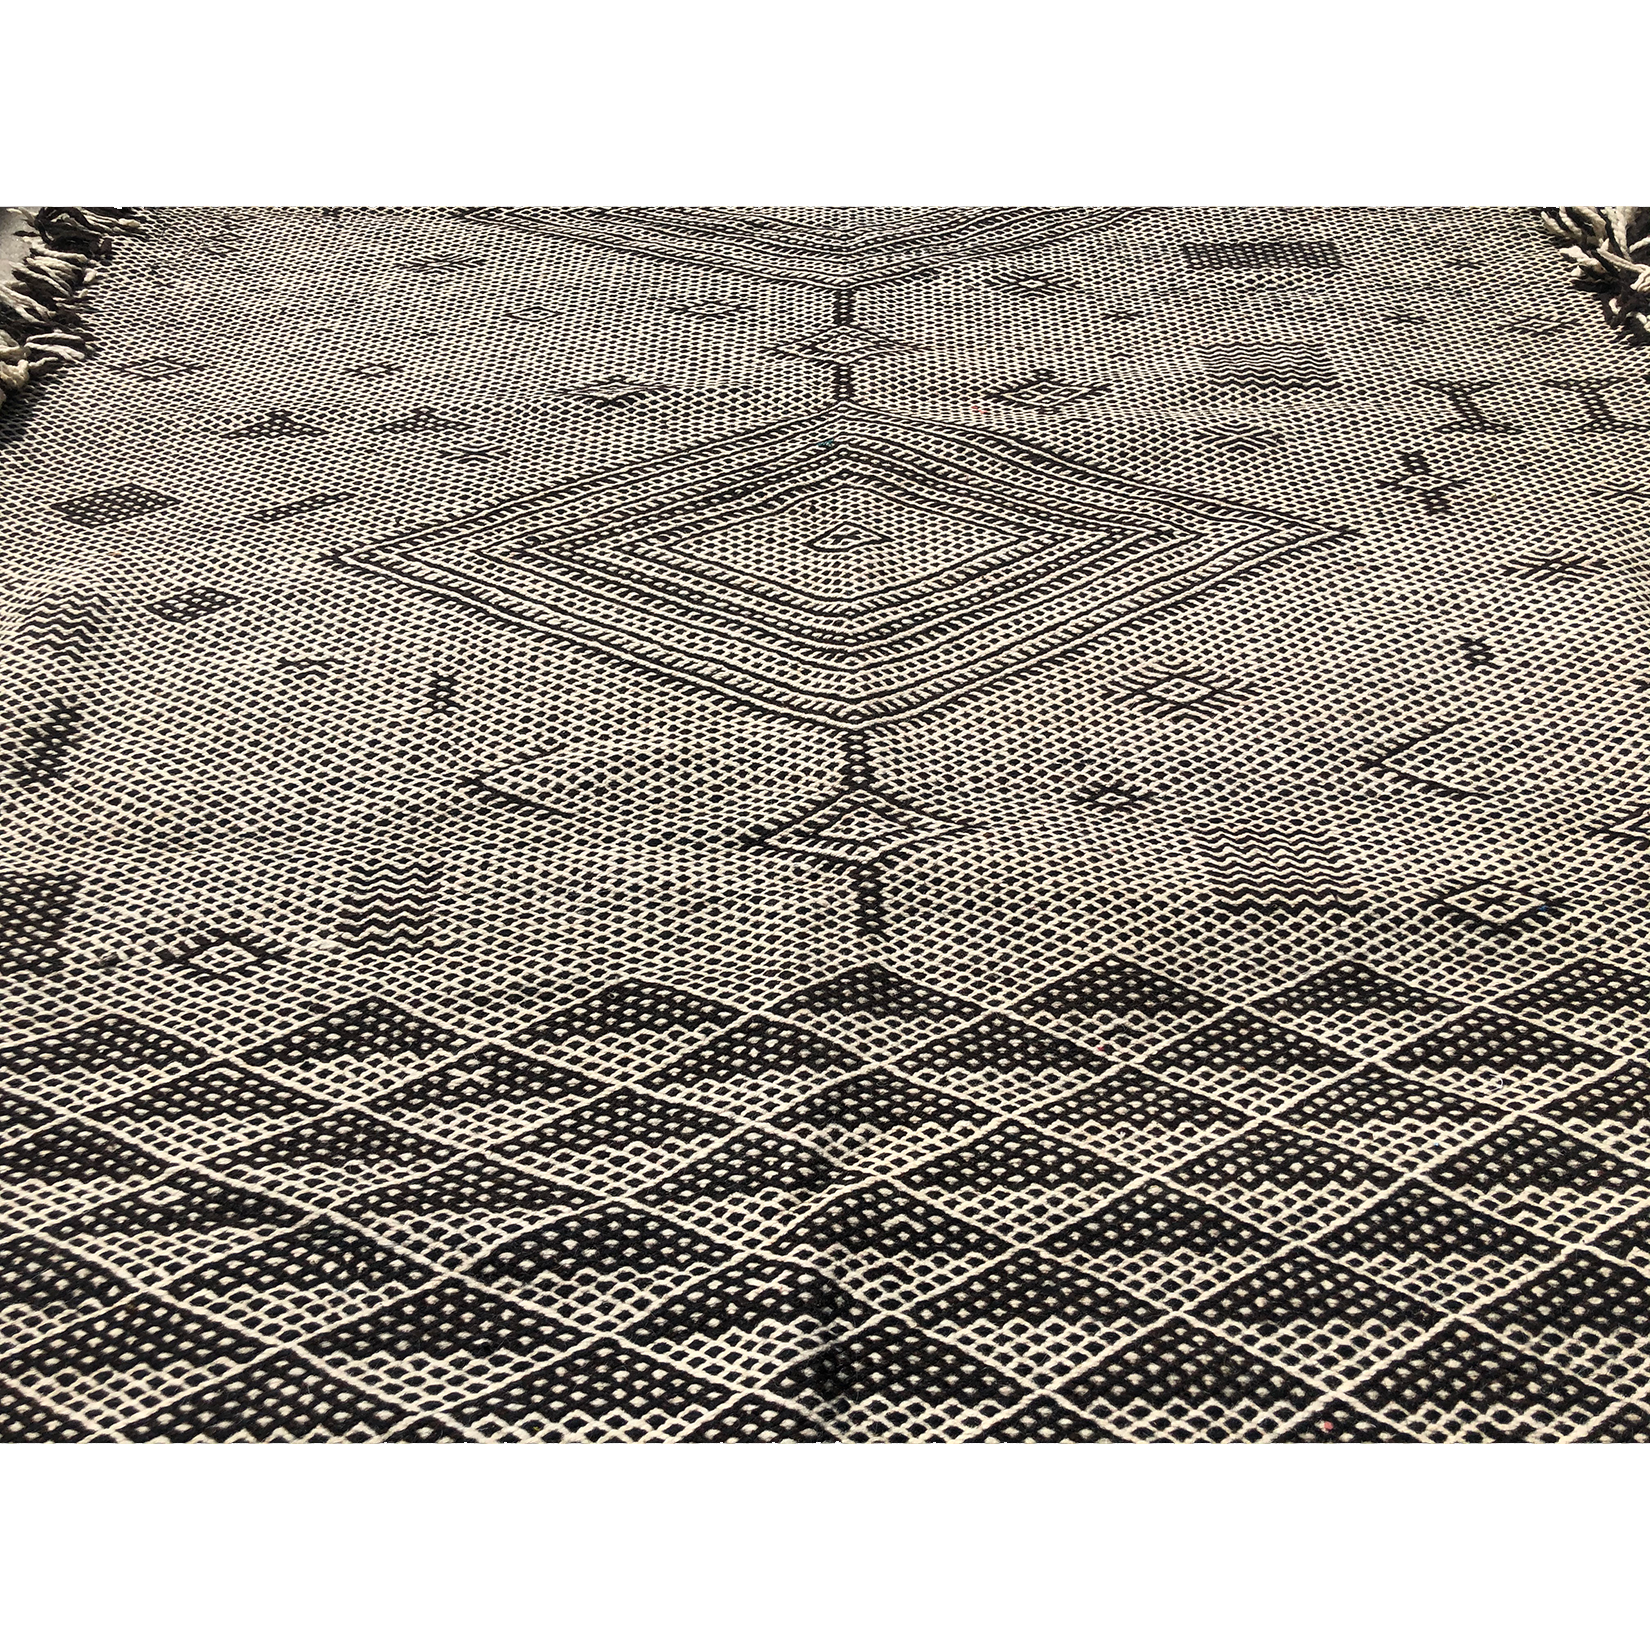 Authentic boho flat weave Moroccan rug - Kantara | Moroccan Rugs